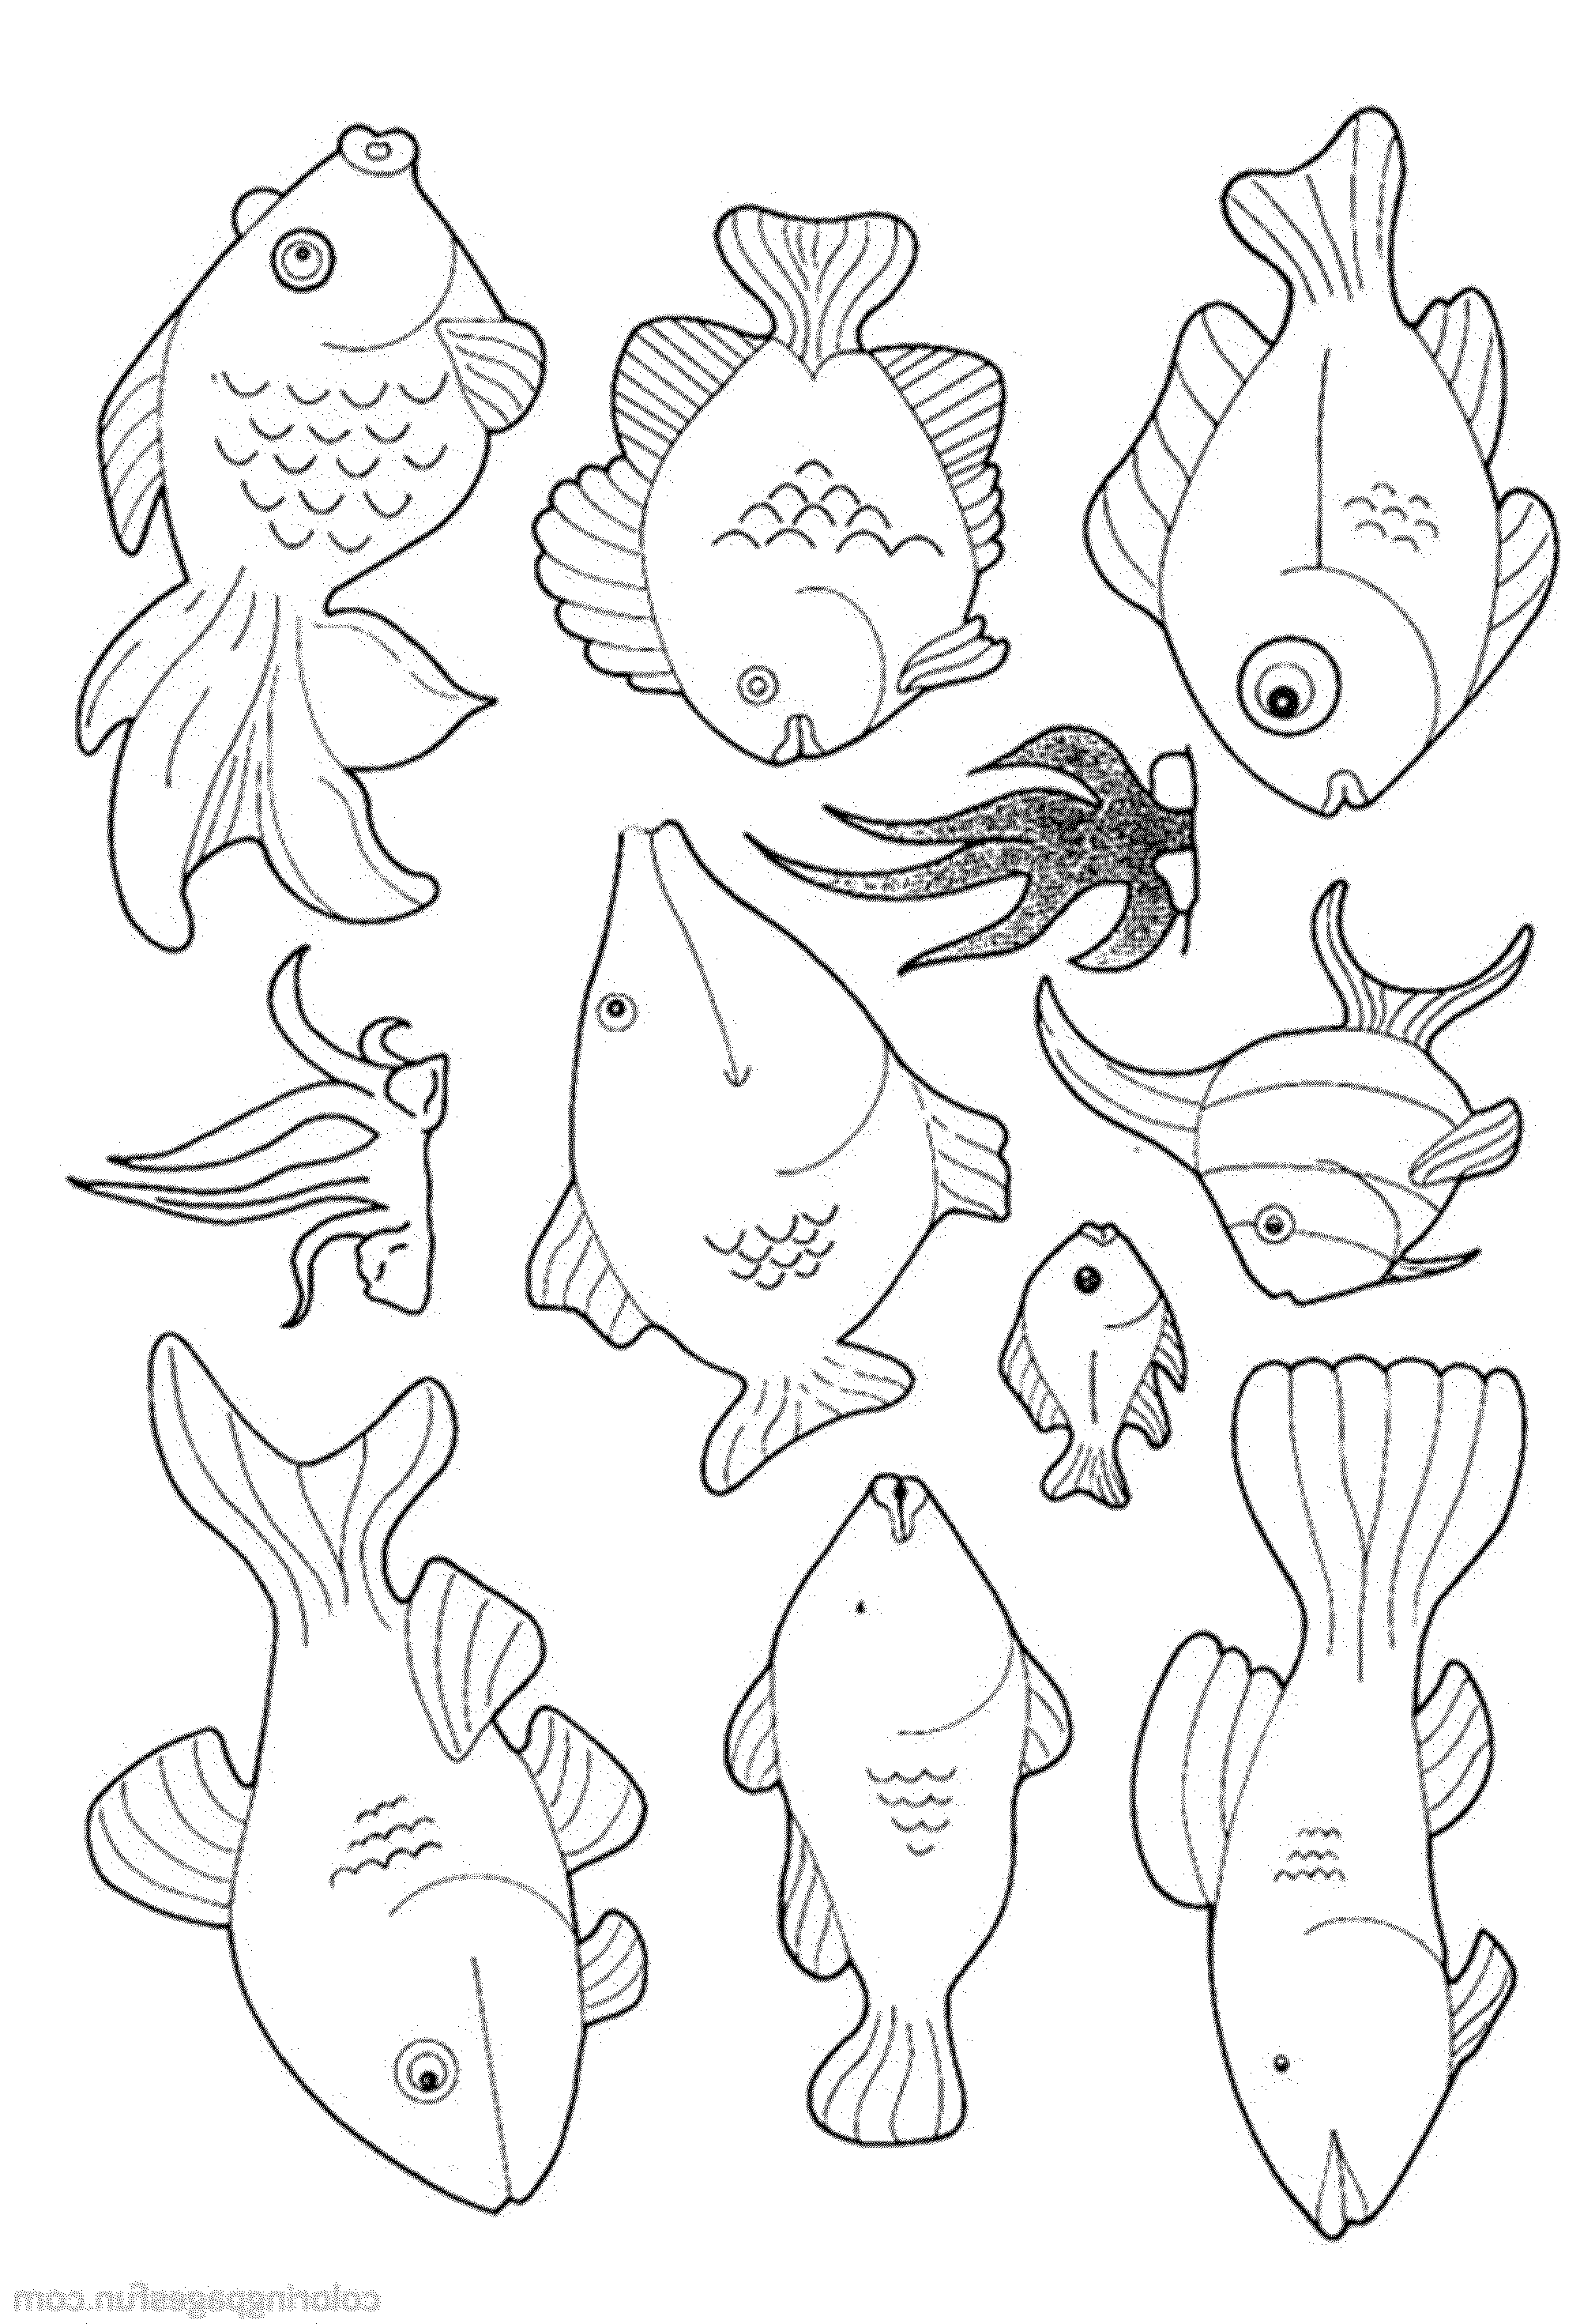 Fish Coloring Pages For Toddlers at GetDrawings.com | Free for ...